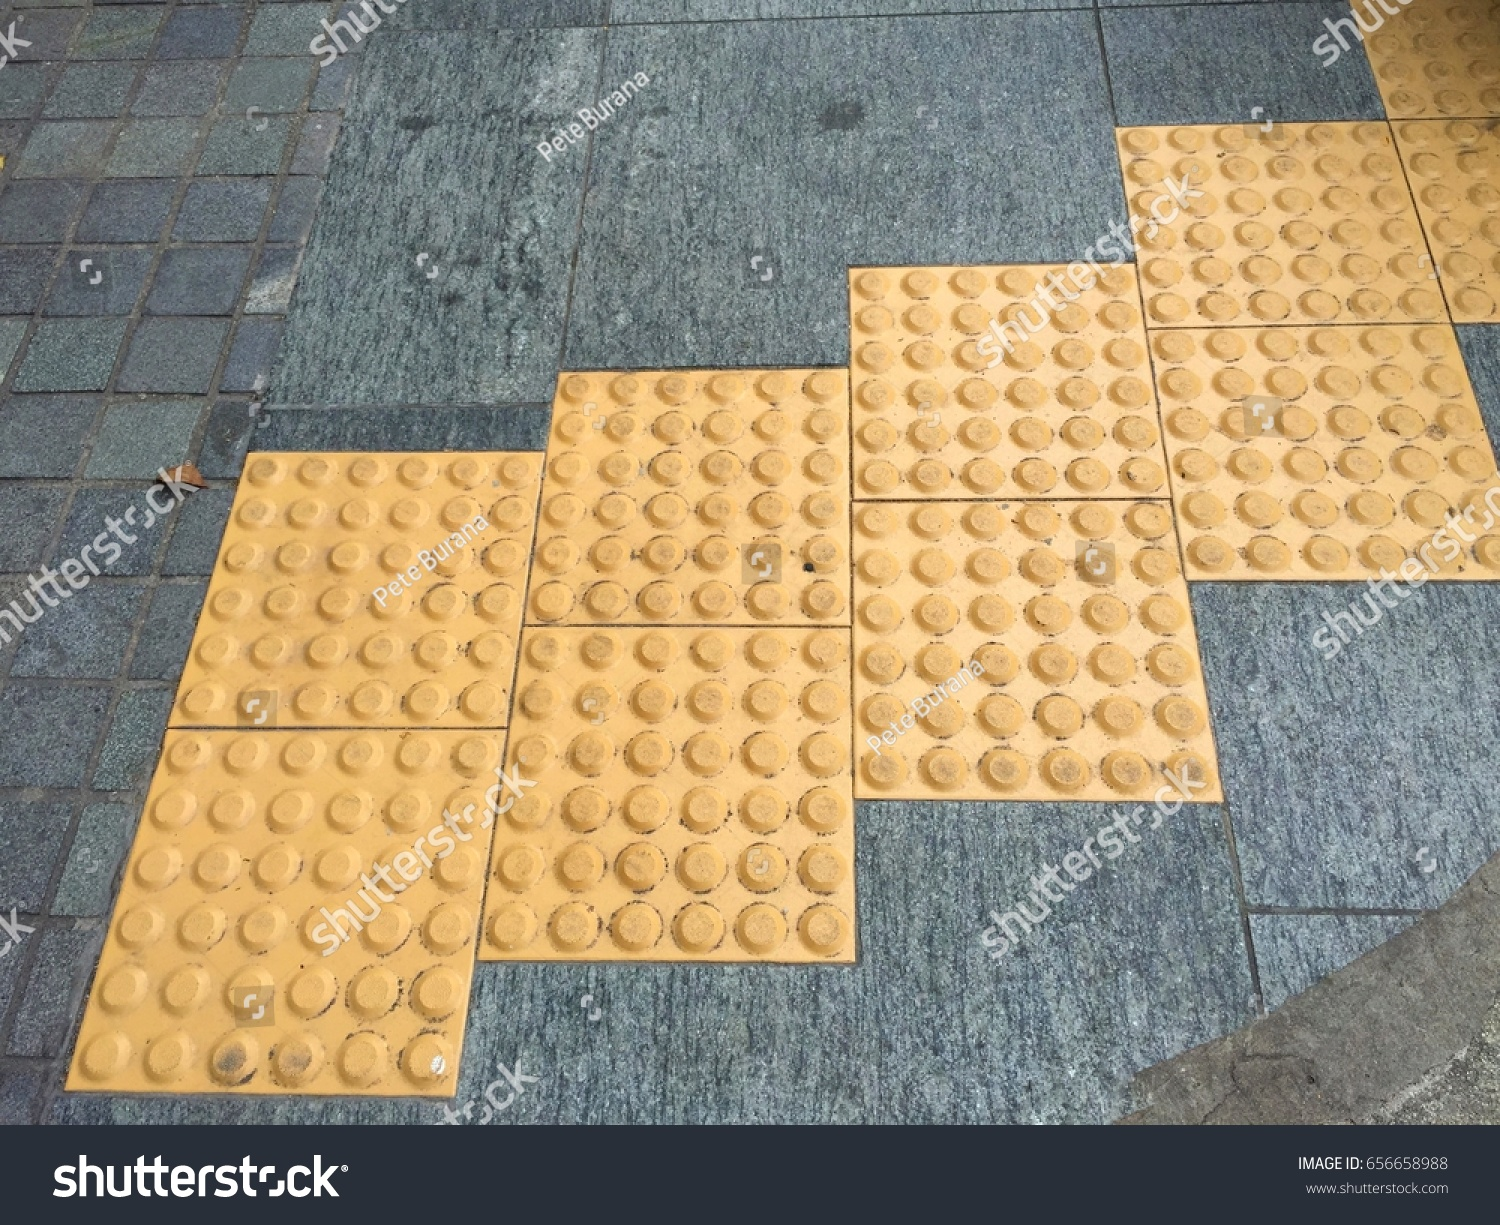 Yellow tactile paving anti slip truncated stock photo 656658988 yellow tactile paving anti slip truncated domes detectable warnings ground surface indicators dailygadgetfo Image collections